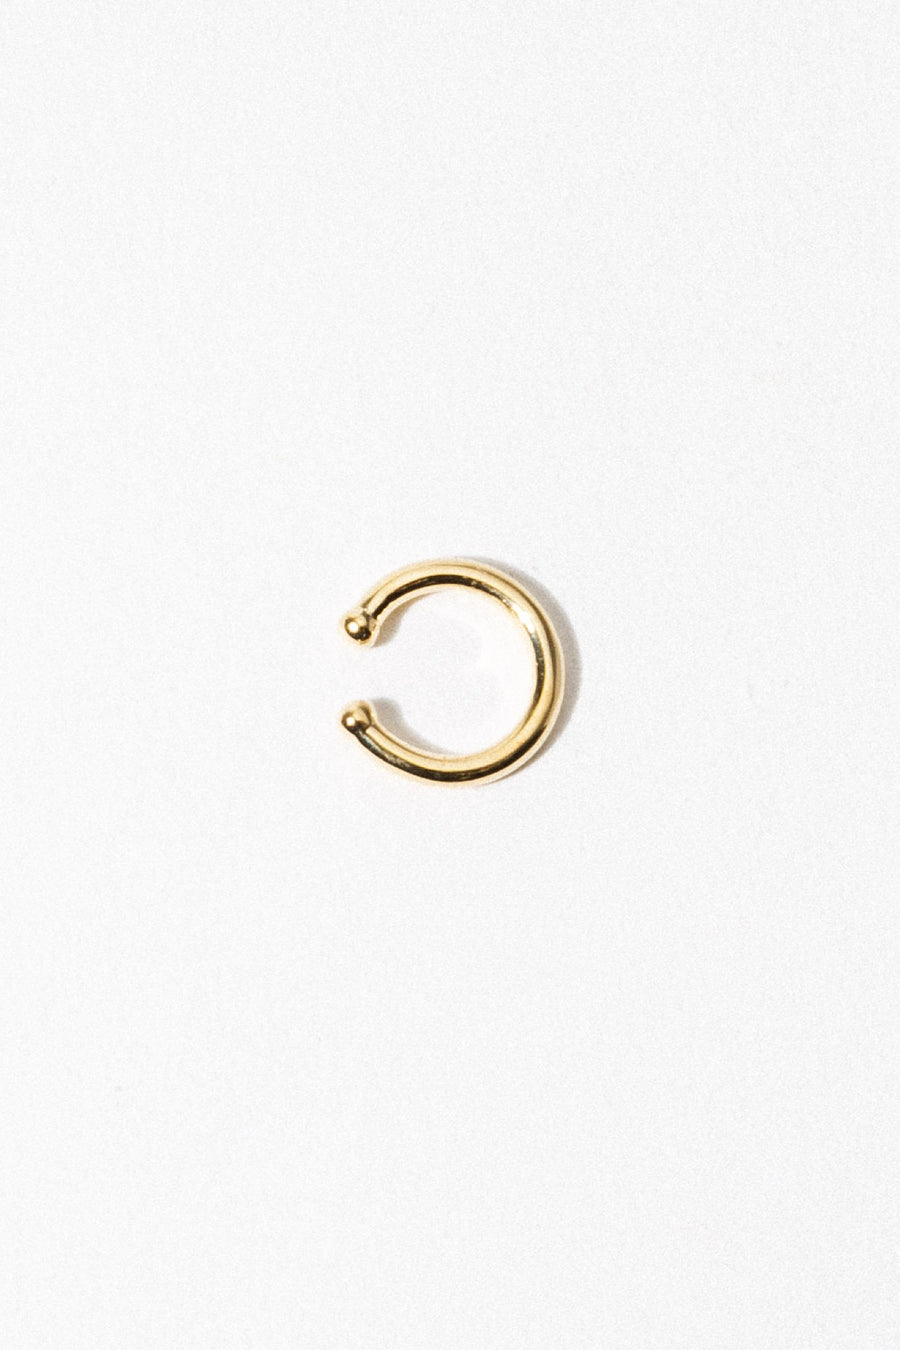 Wildthings Collectables earcuff